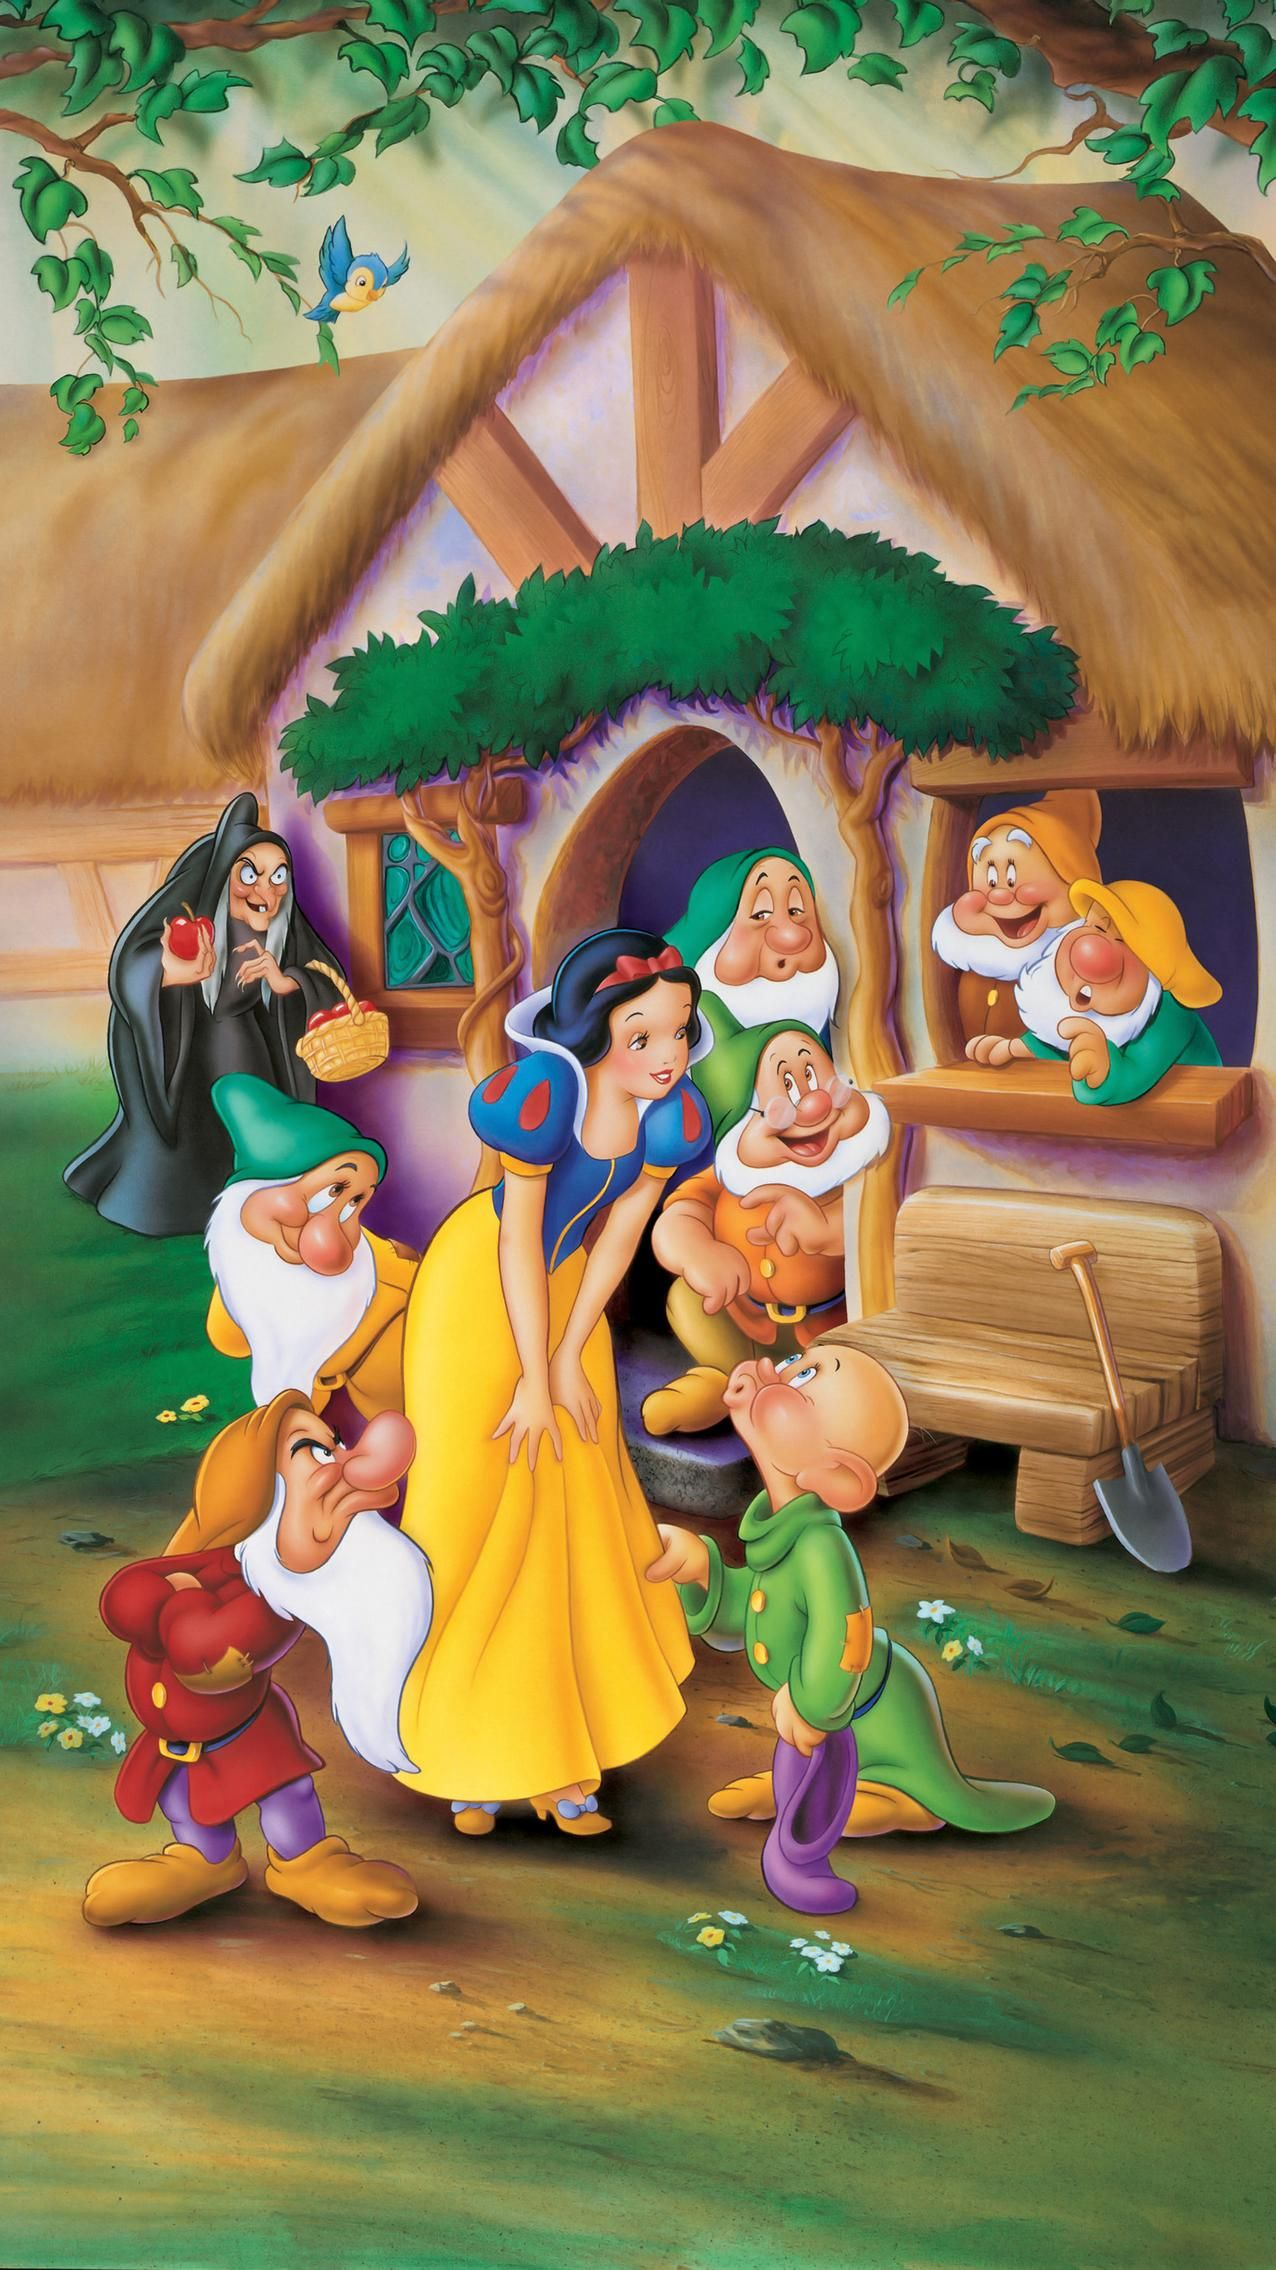 Snow White and the Seven Dwarfs (1937) Phone Wallpaper | Moviemania